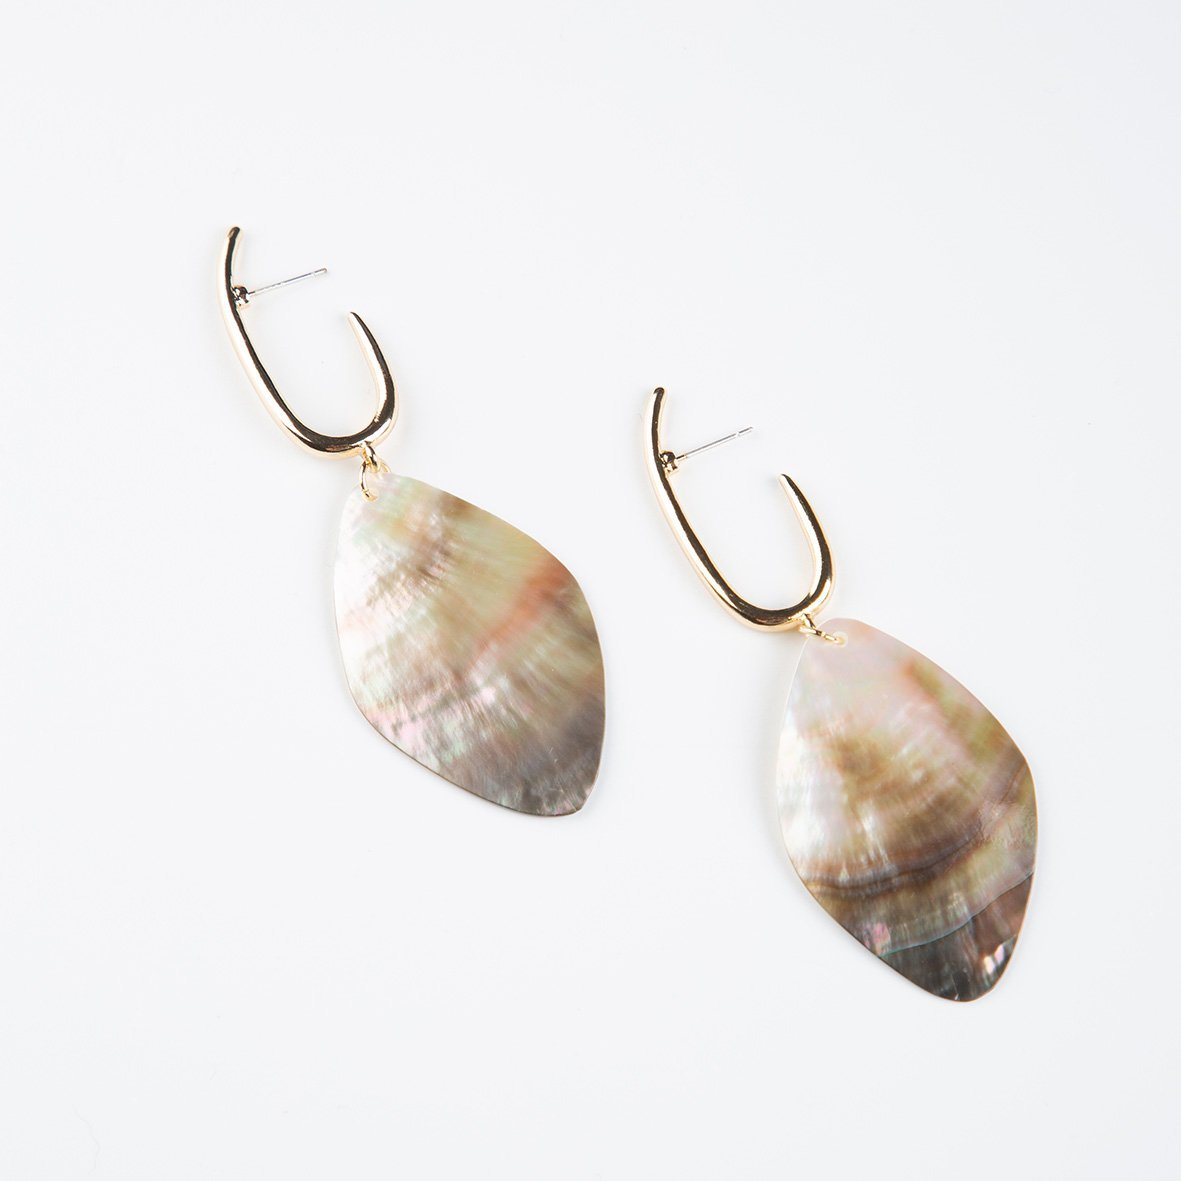 curAtiv proudly gives you Bali Hoop and Large Shell Drop Earrings Earrings.